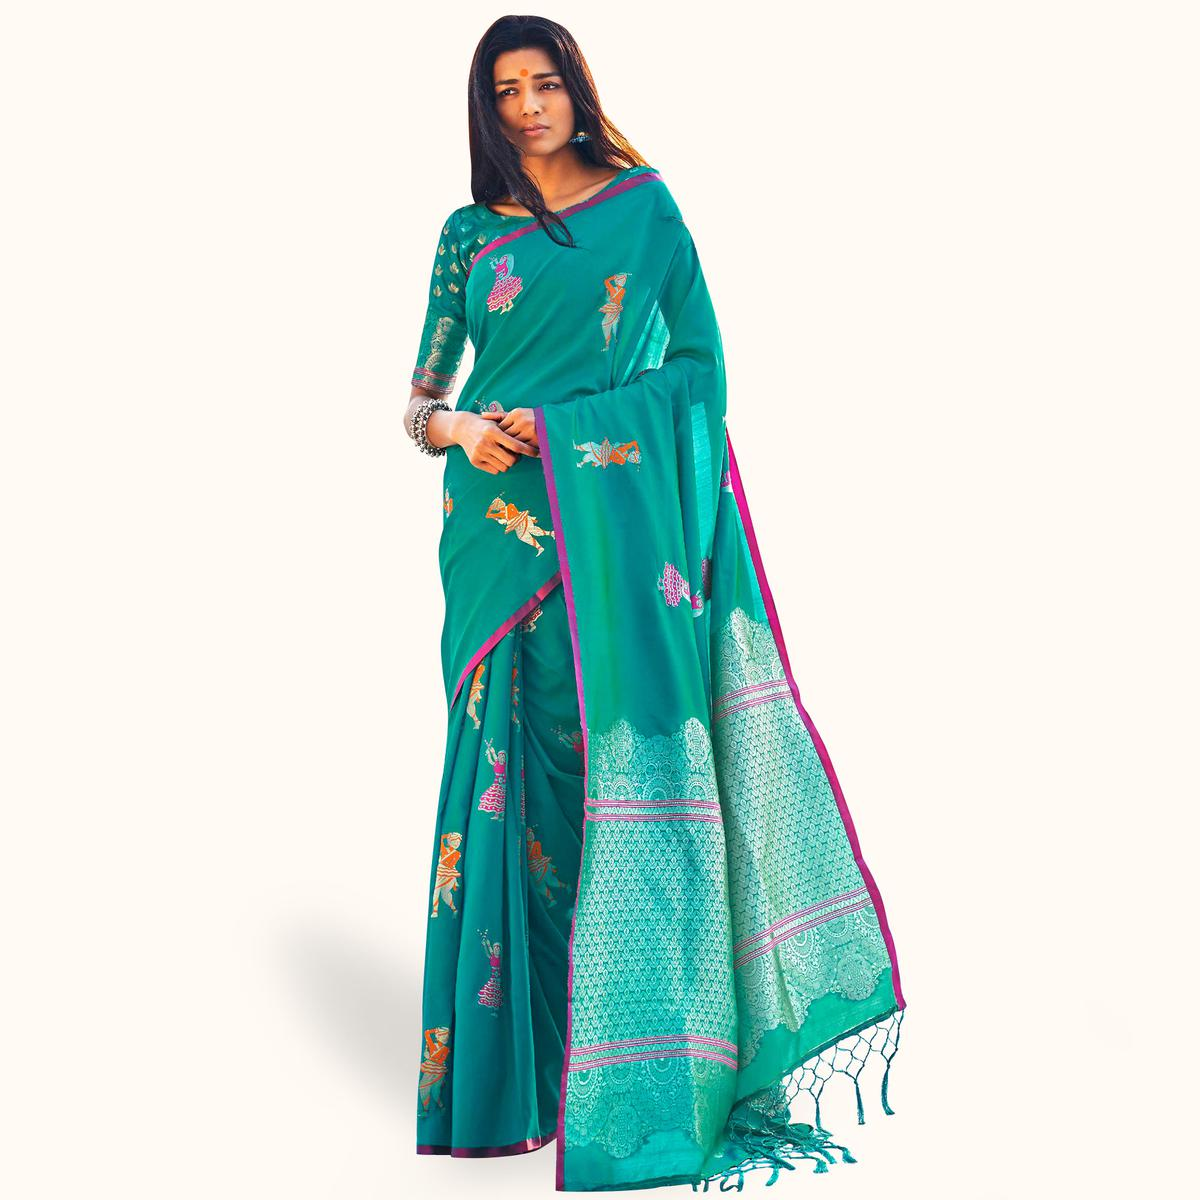 Stunning Turquoise Green Colored Festive Wear Woven Silk Saree